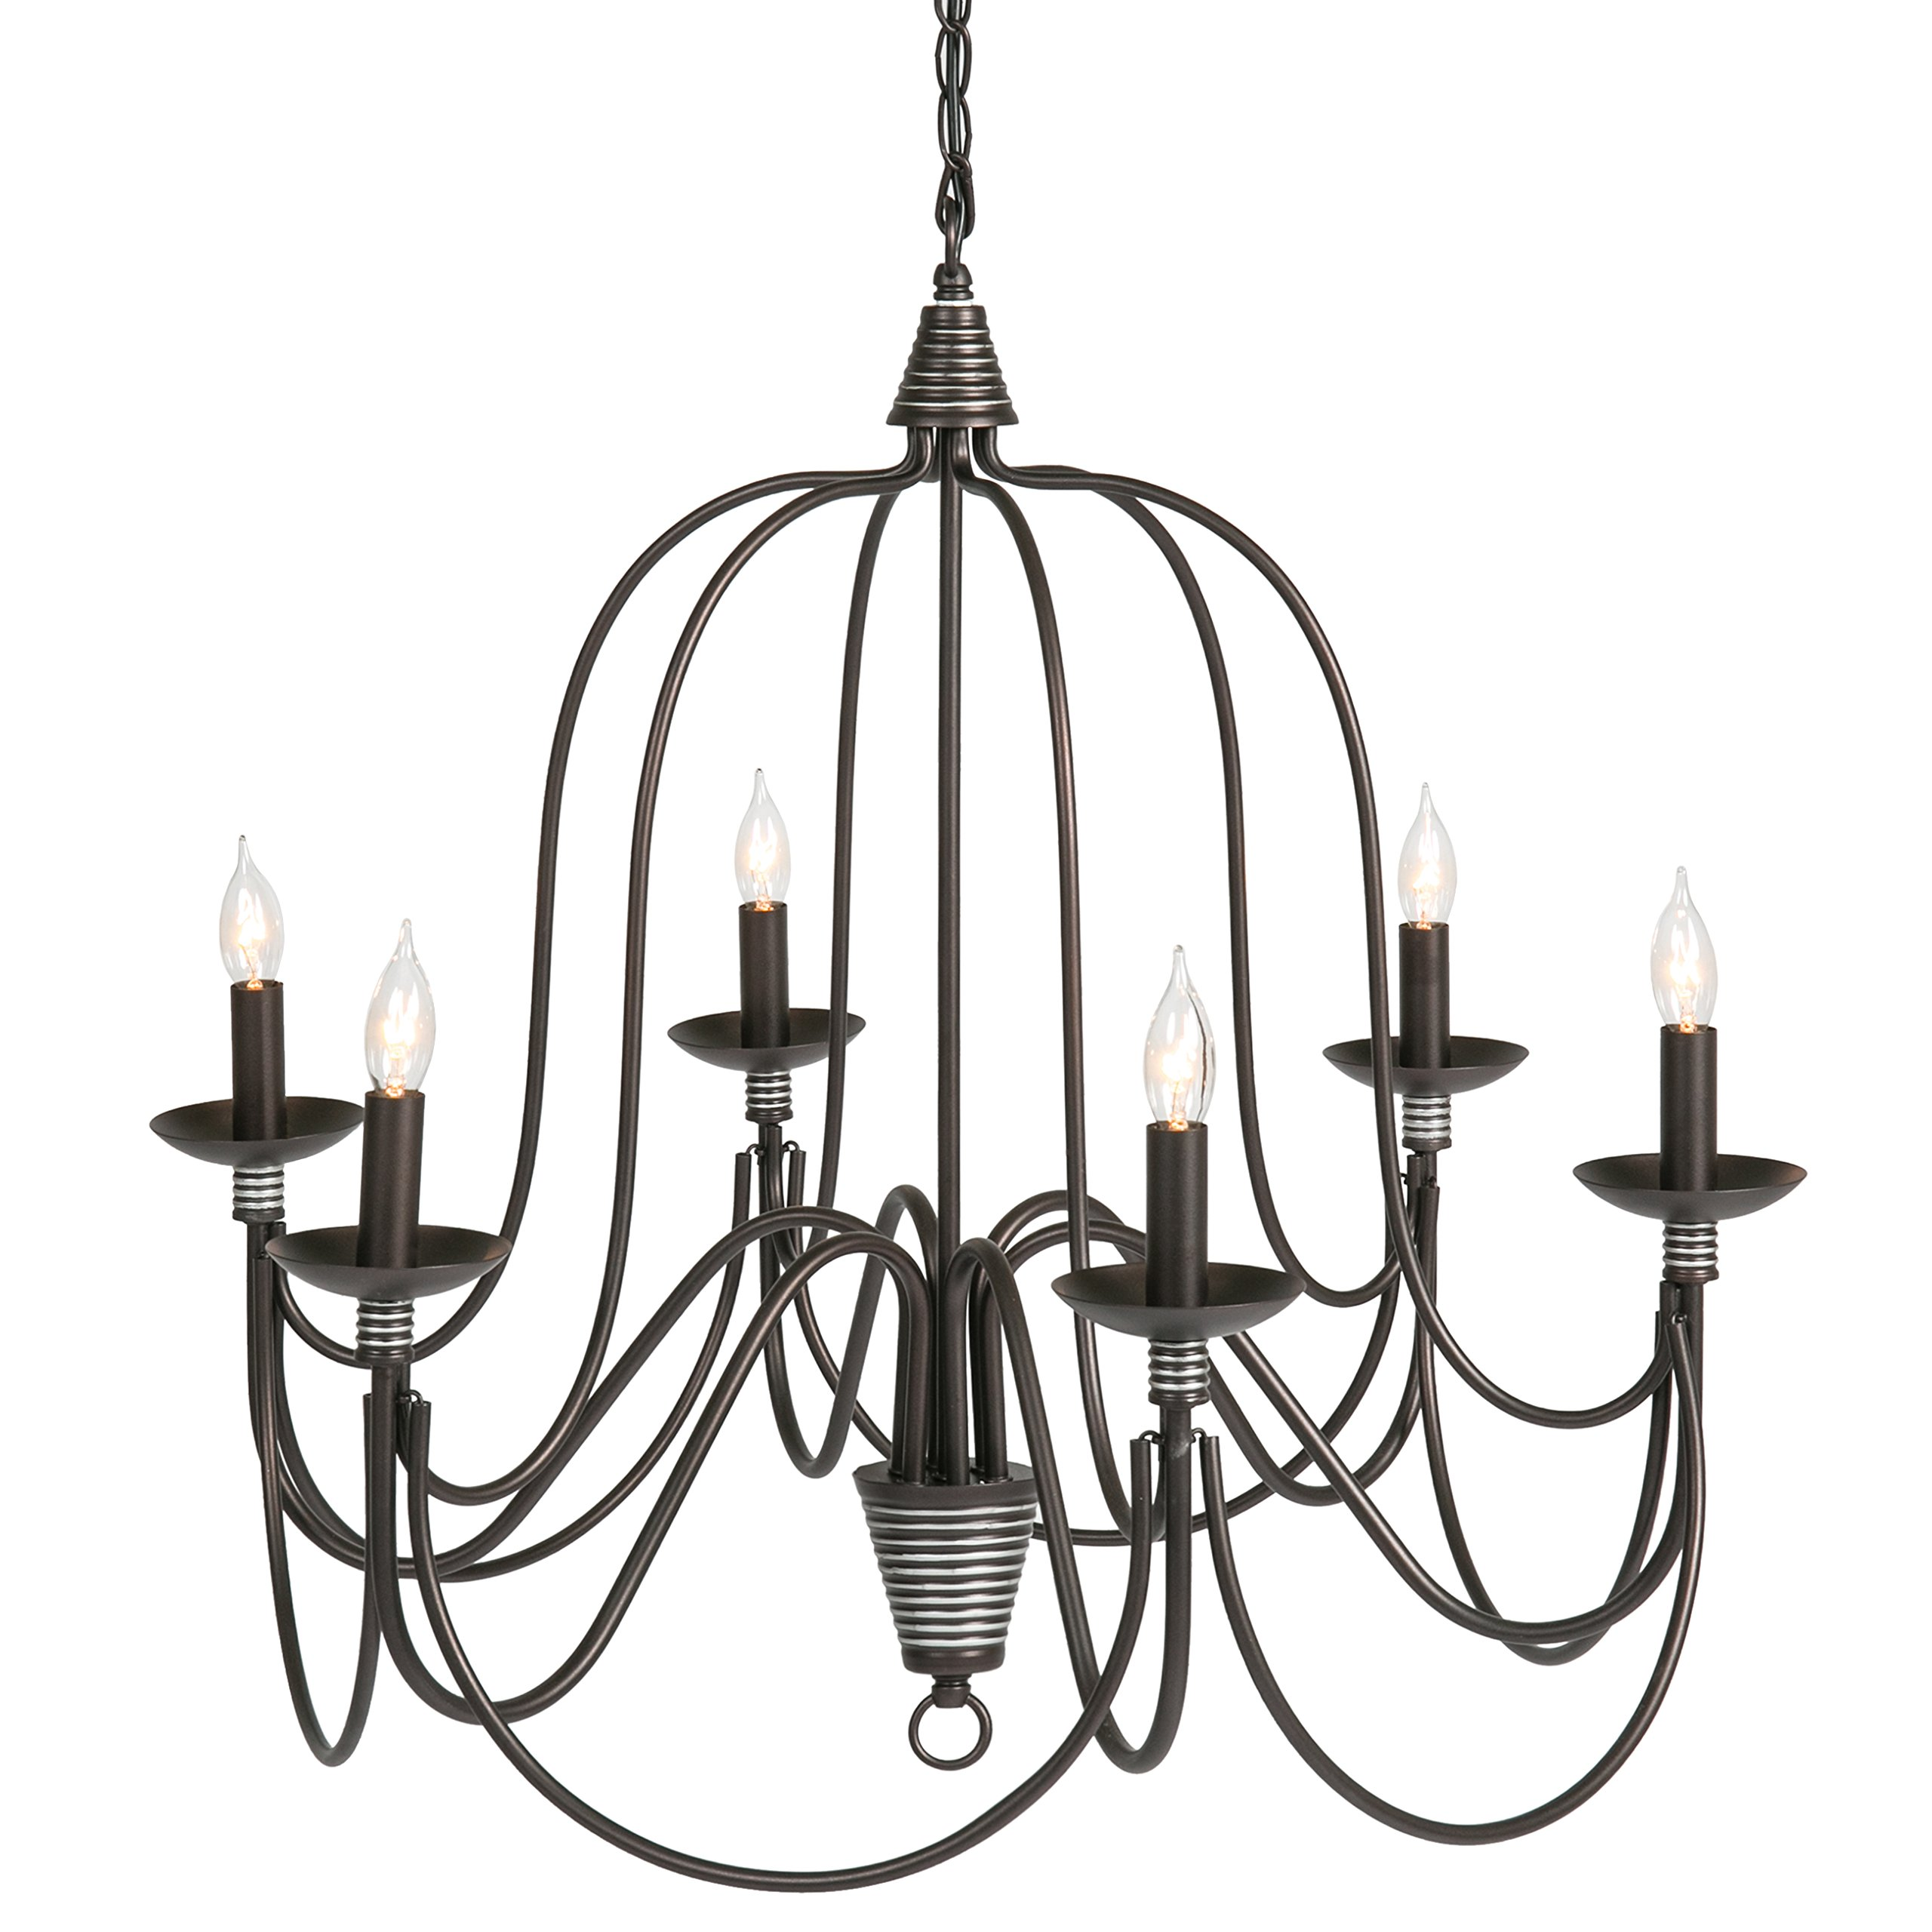 Best Choice Products 25in 6-Light Candle Chandelier Lighting Fixture for Living Room, Foyer w/ 41in Chain - Bronze